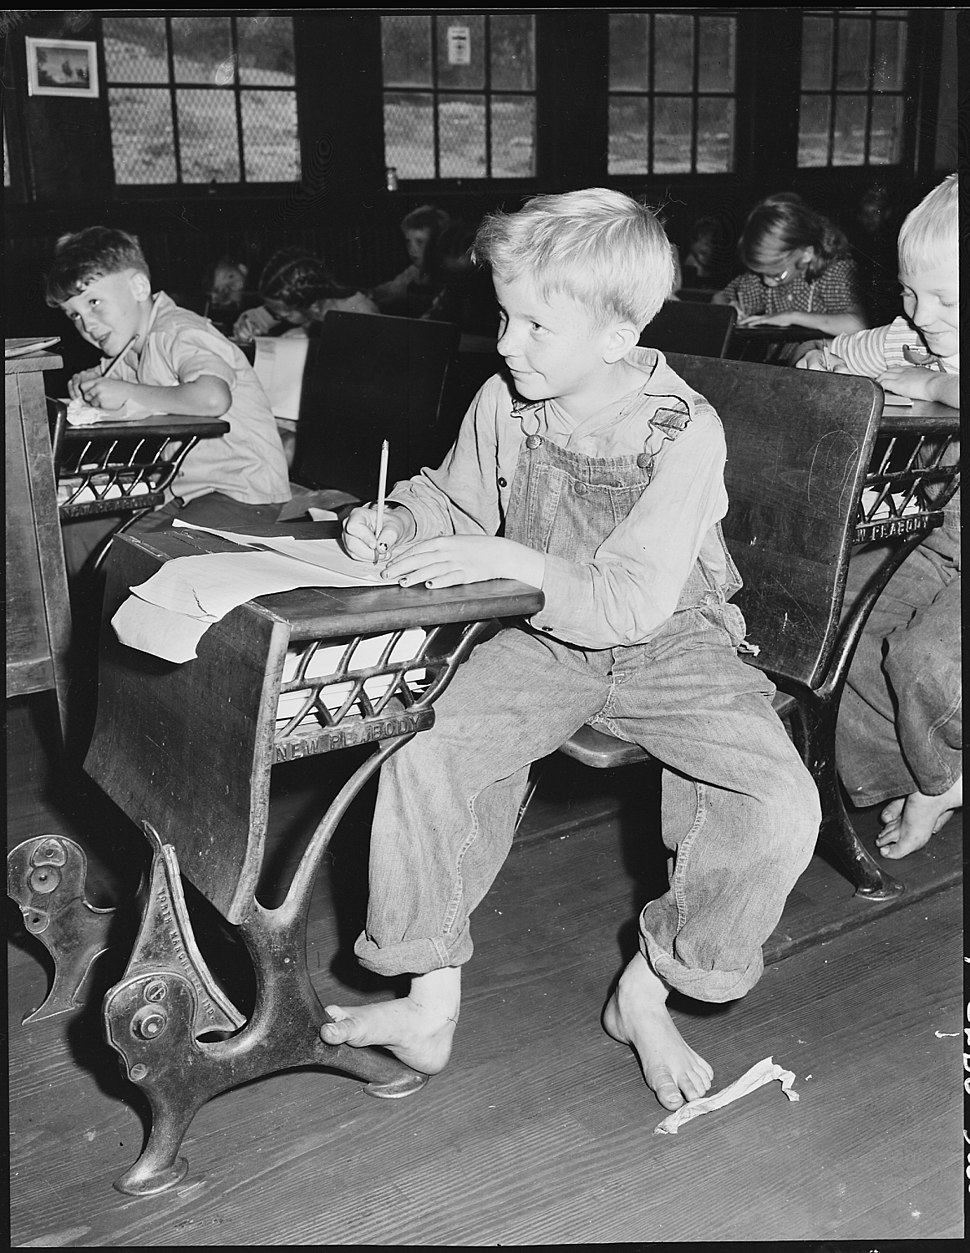 Coal miner%27s child in grade school. Lejunior, Harlan County, Kentucky. - NARA - 541367.jpg